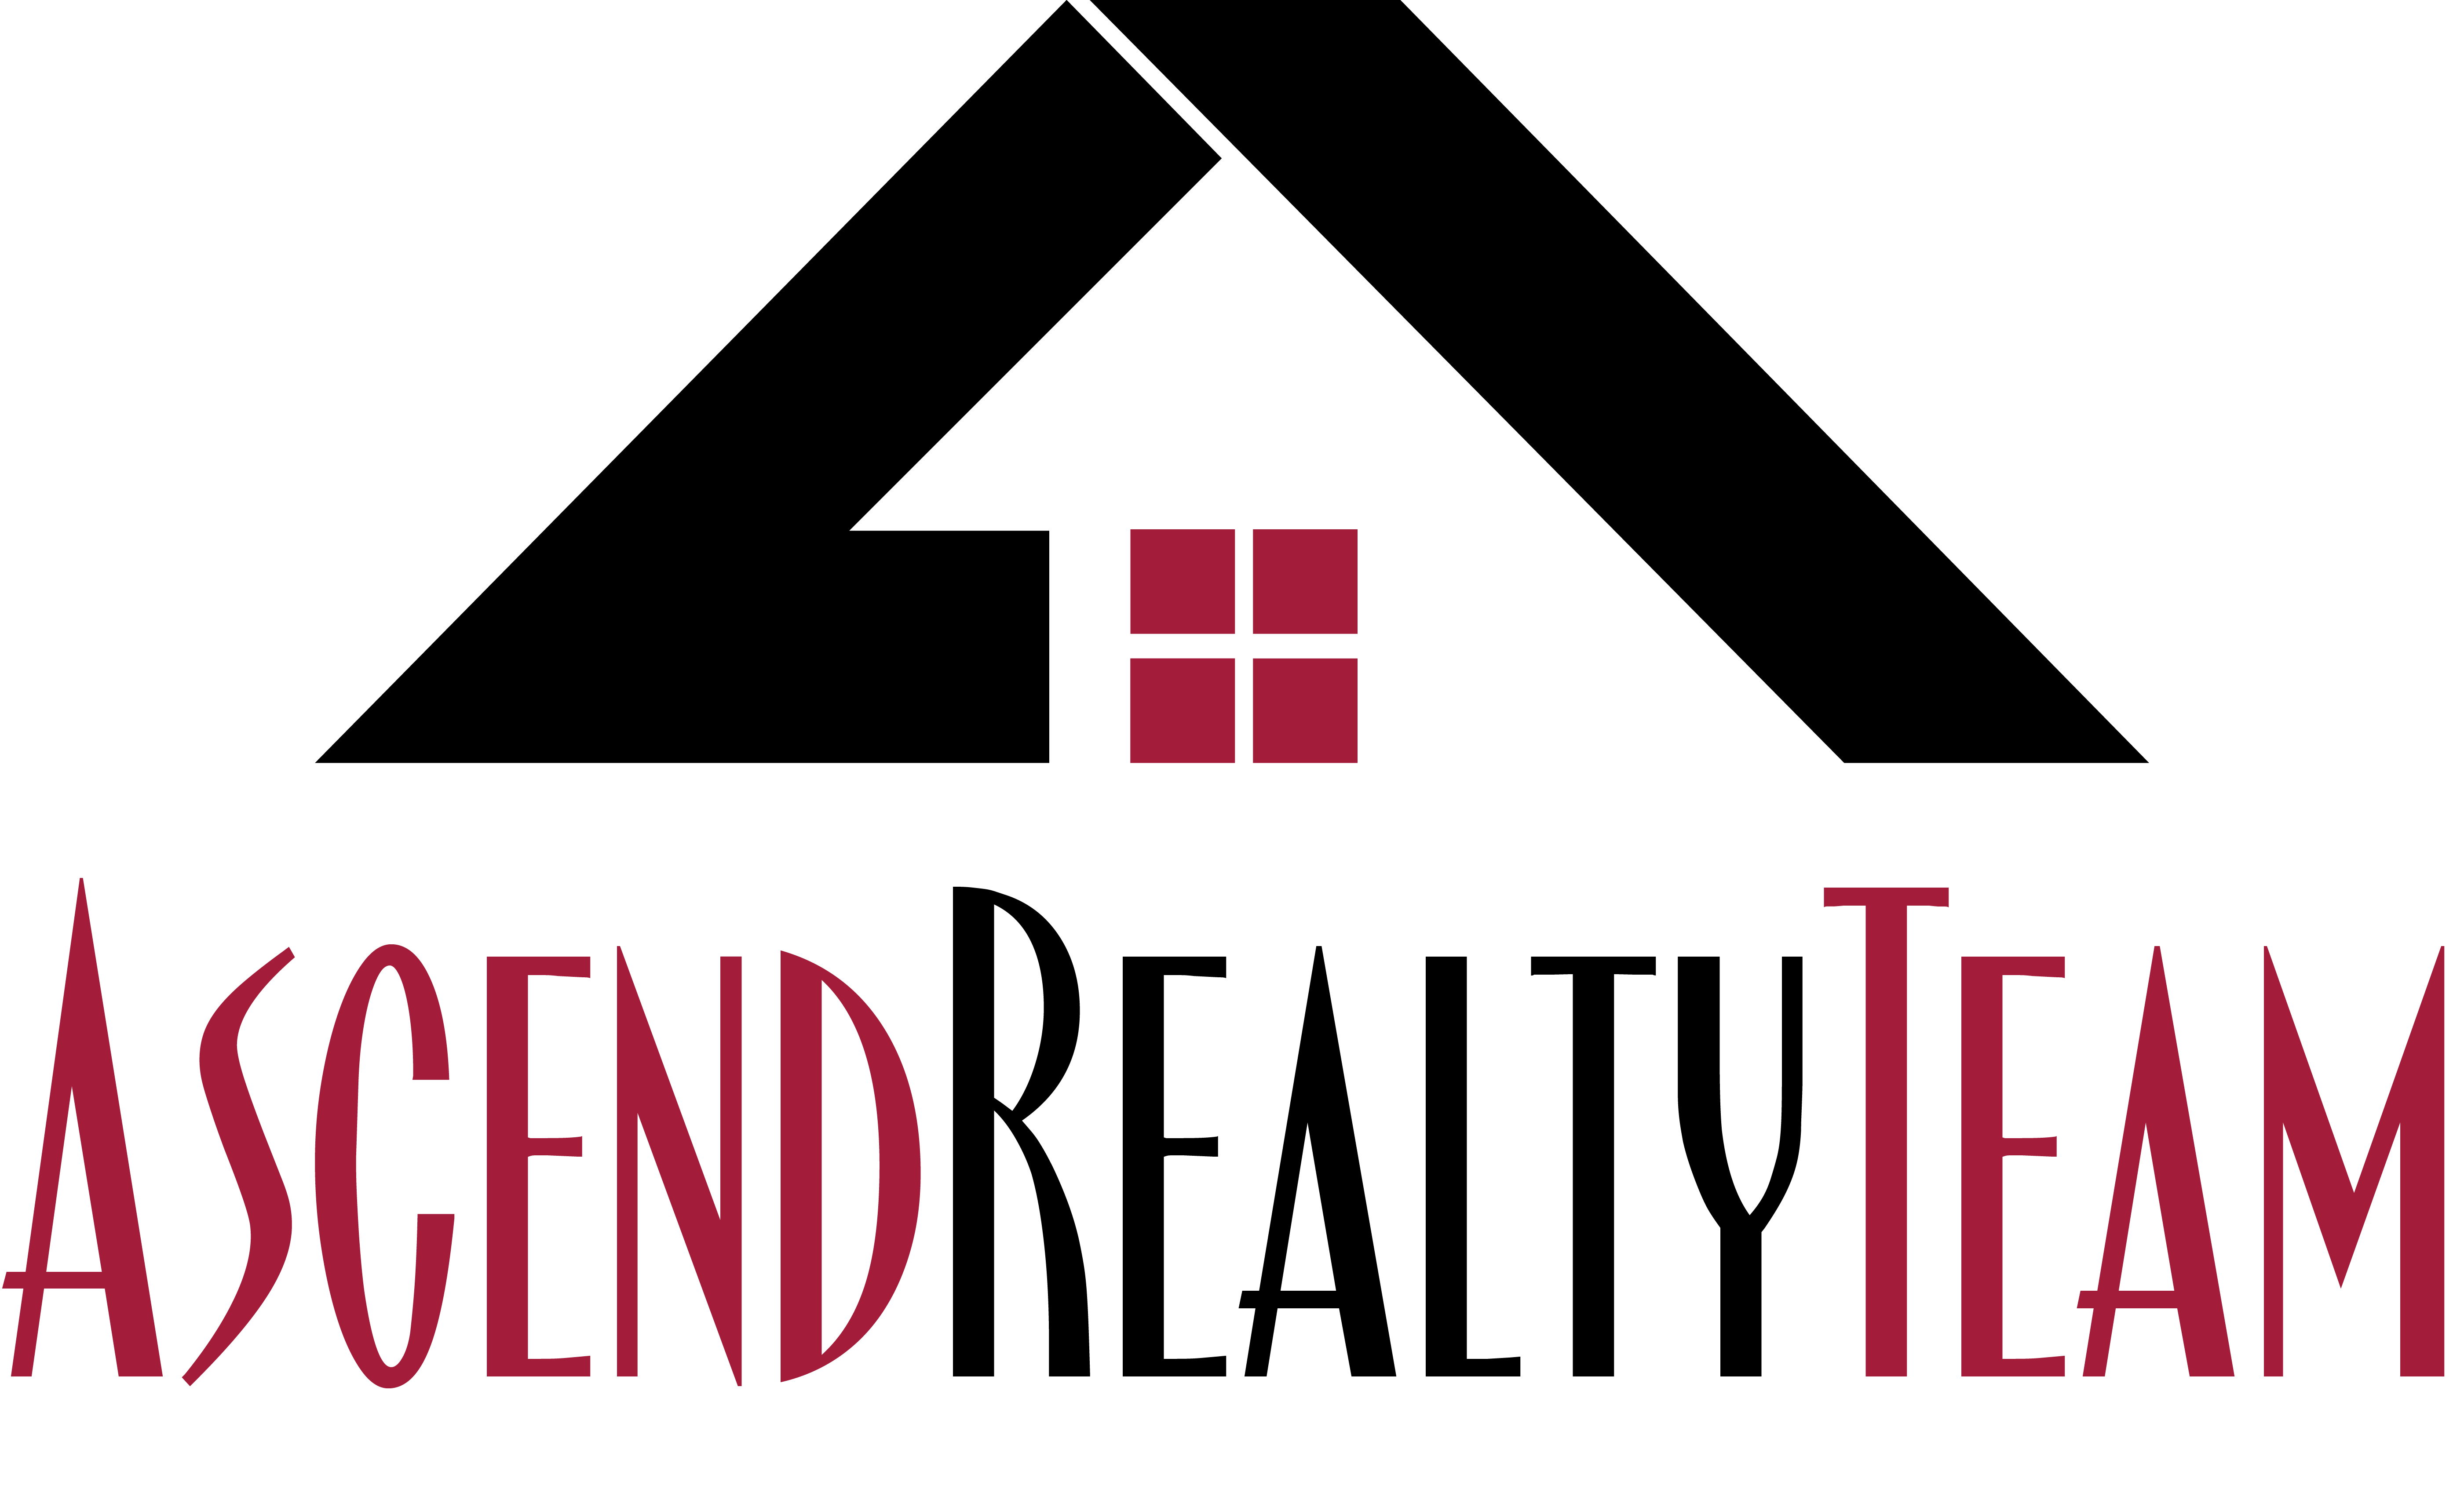 Ascend Realty